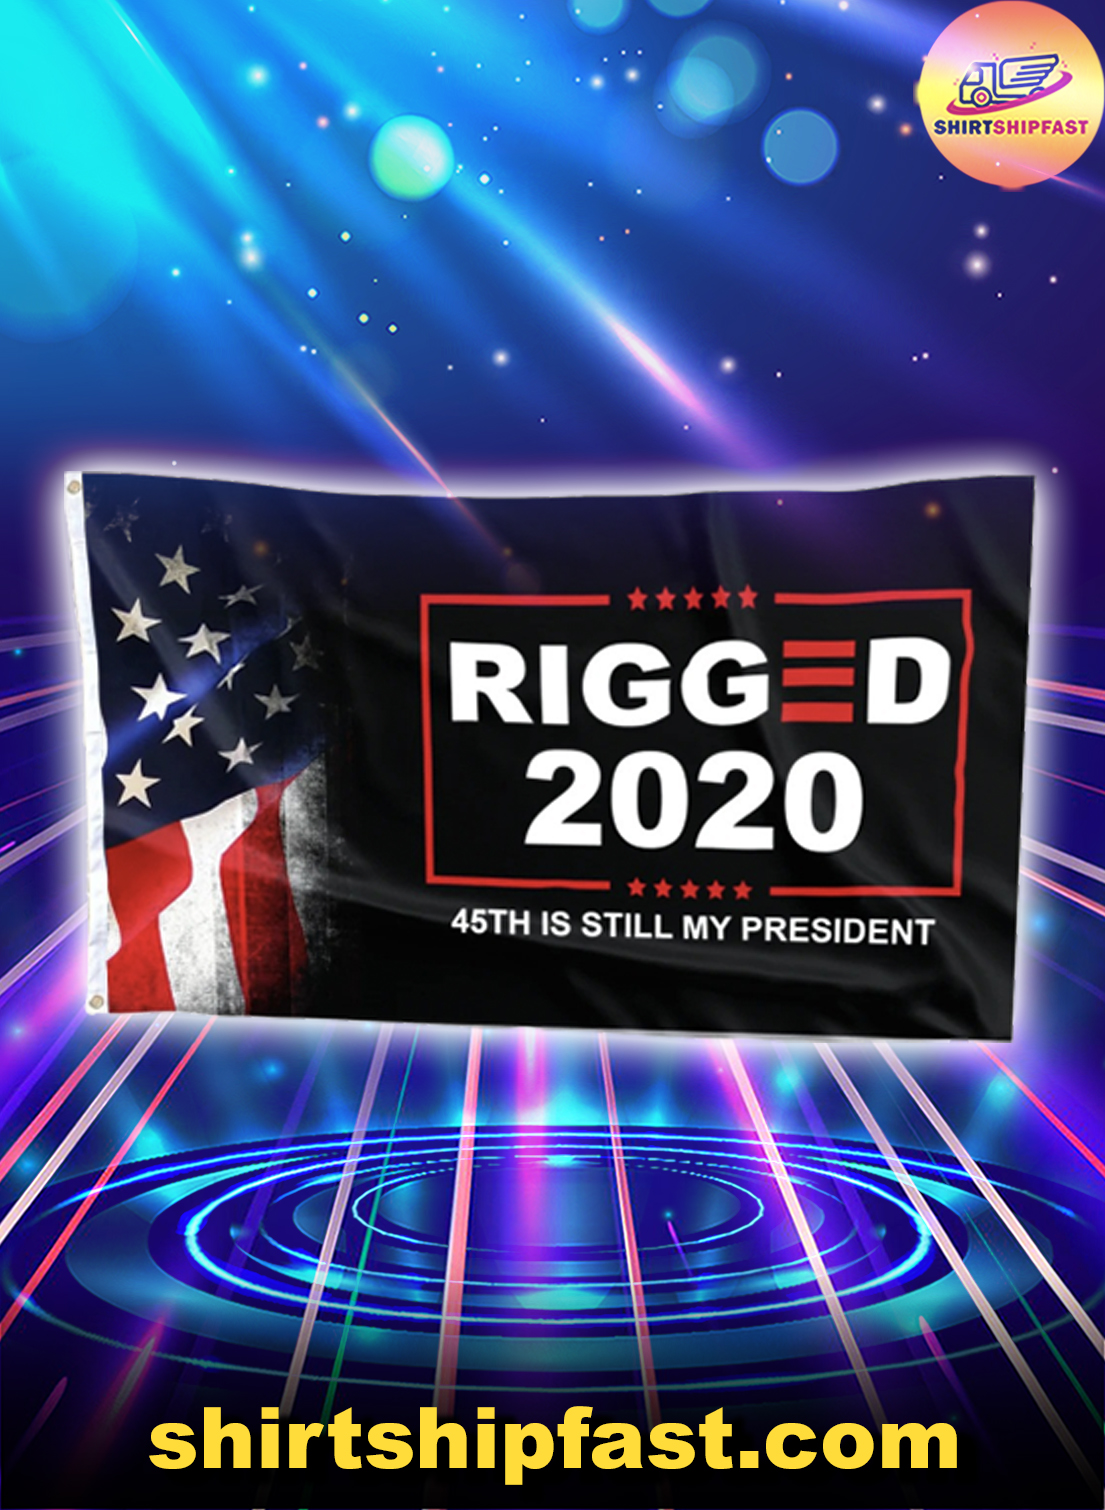 Rigged 2020 45th is still my President flag - Picture 1